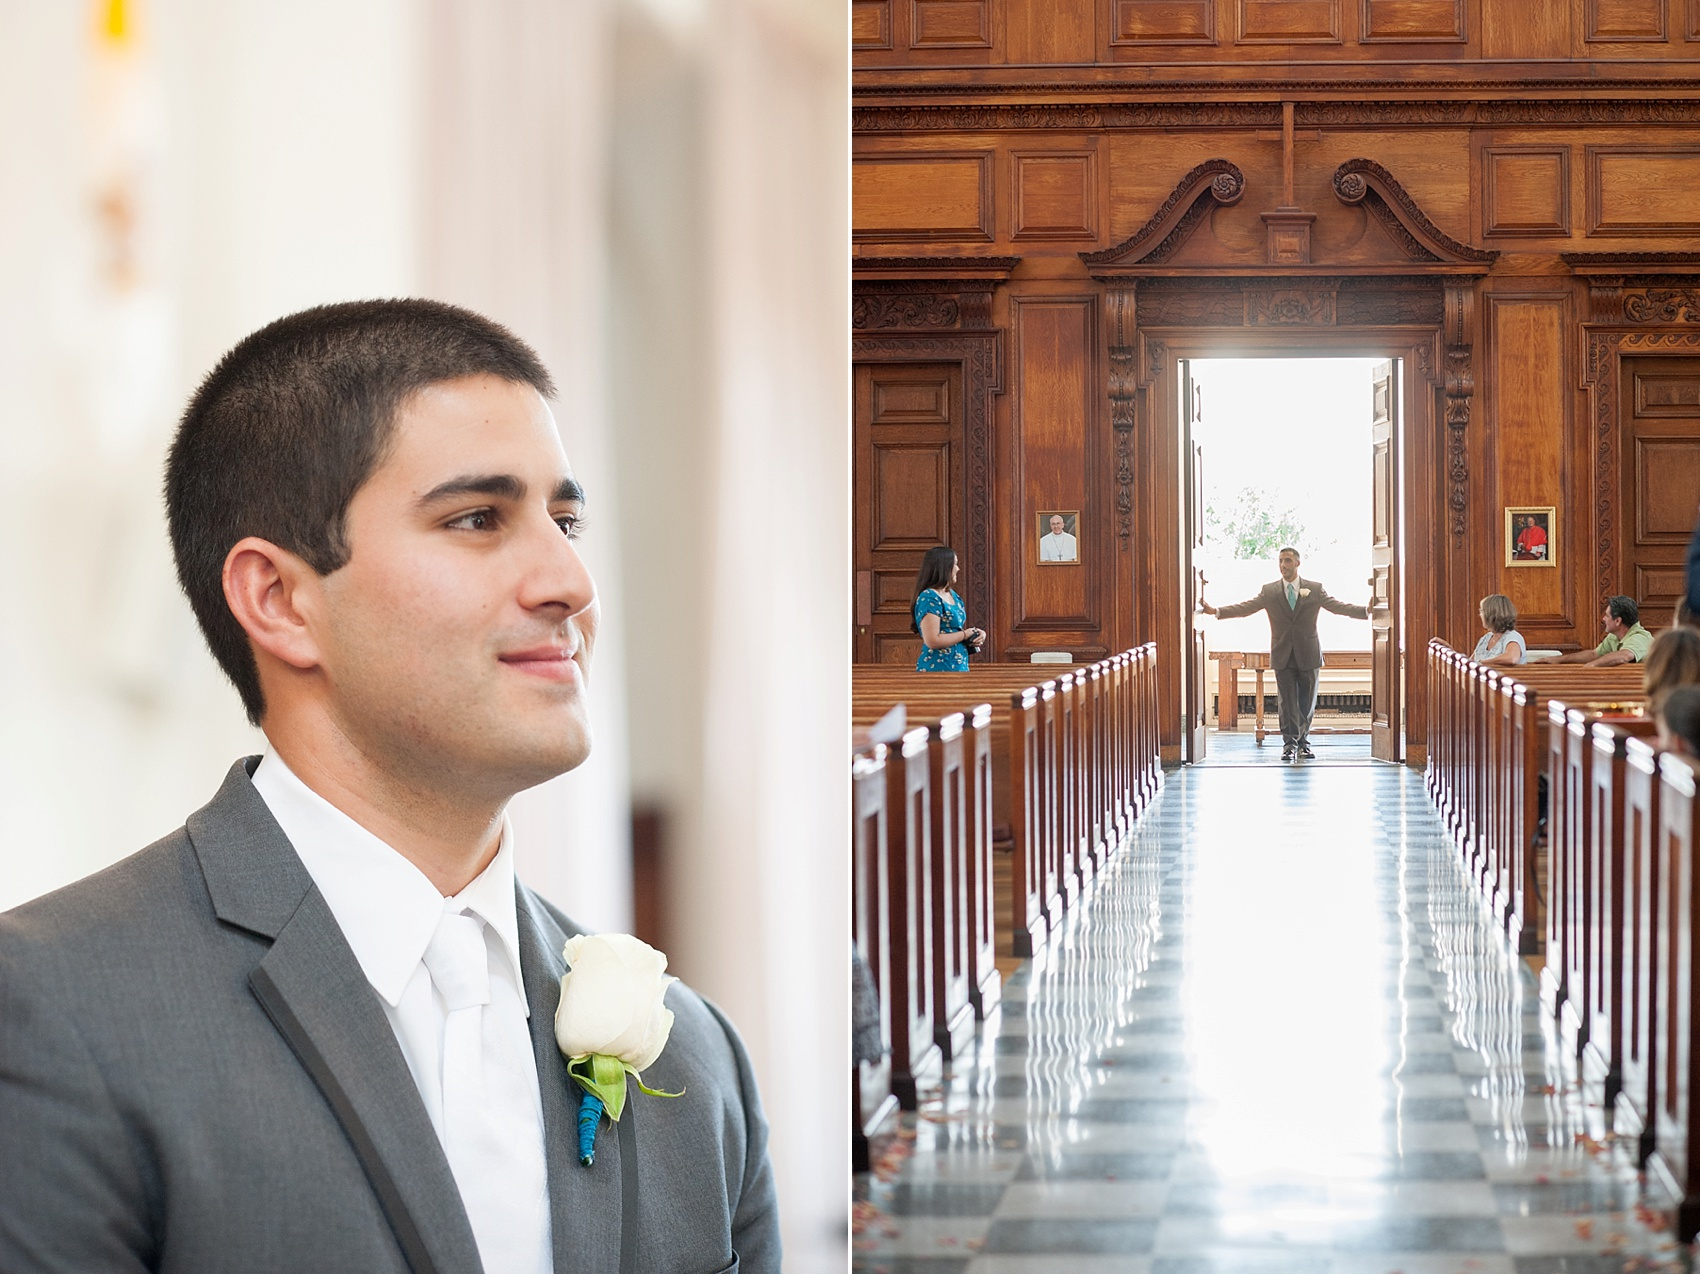 Manhattan College ceremony wedding photos in New York, by Mikkel Paige Photography.